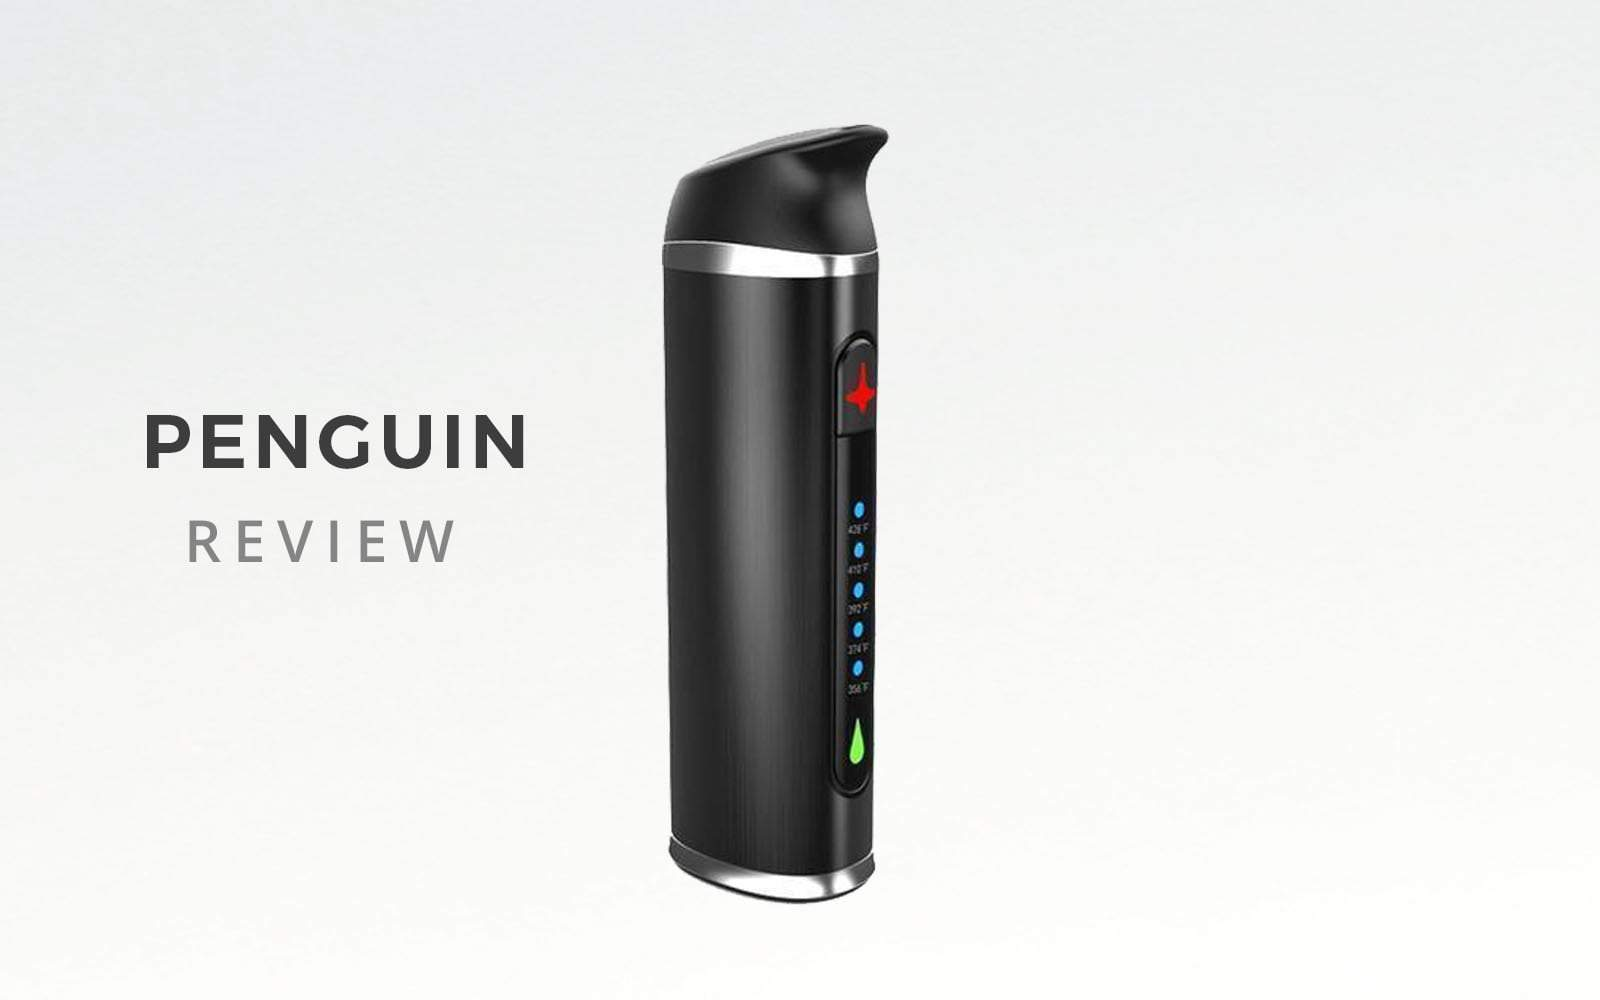 Penguin Vaporizer Review